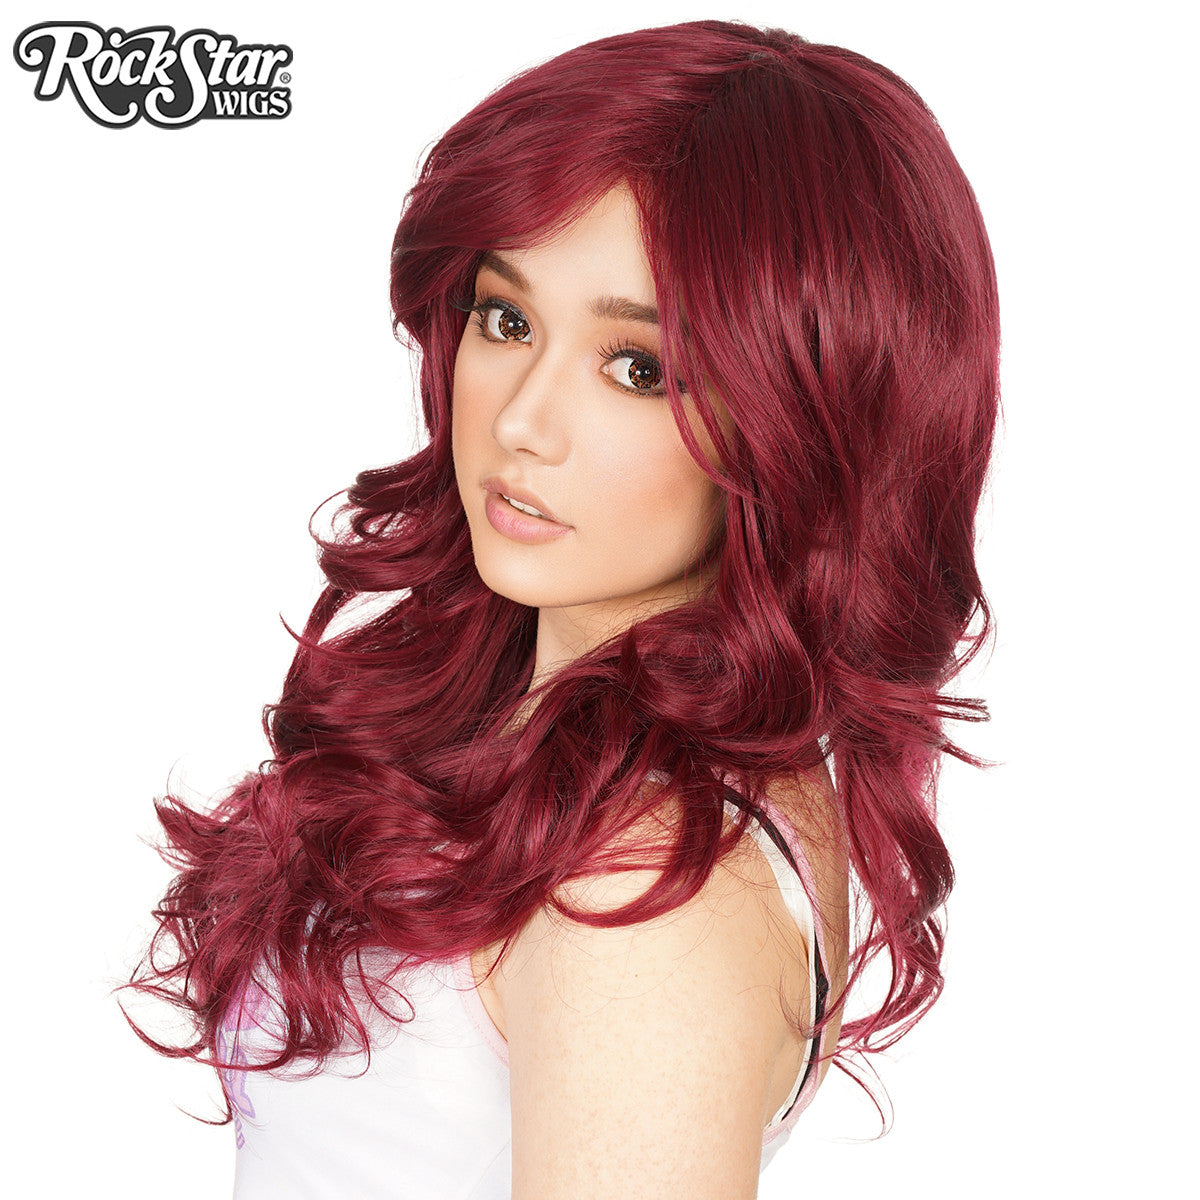 RockStar Wigs® <br> Farrah™ Collection - Temptress -00175